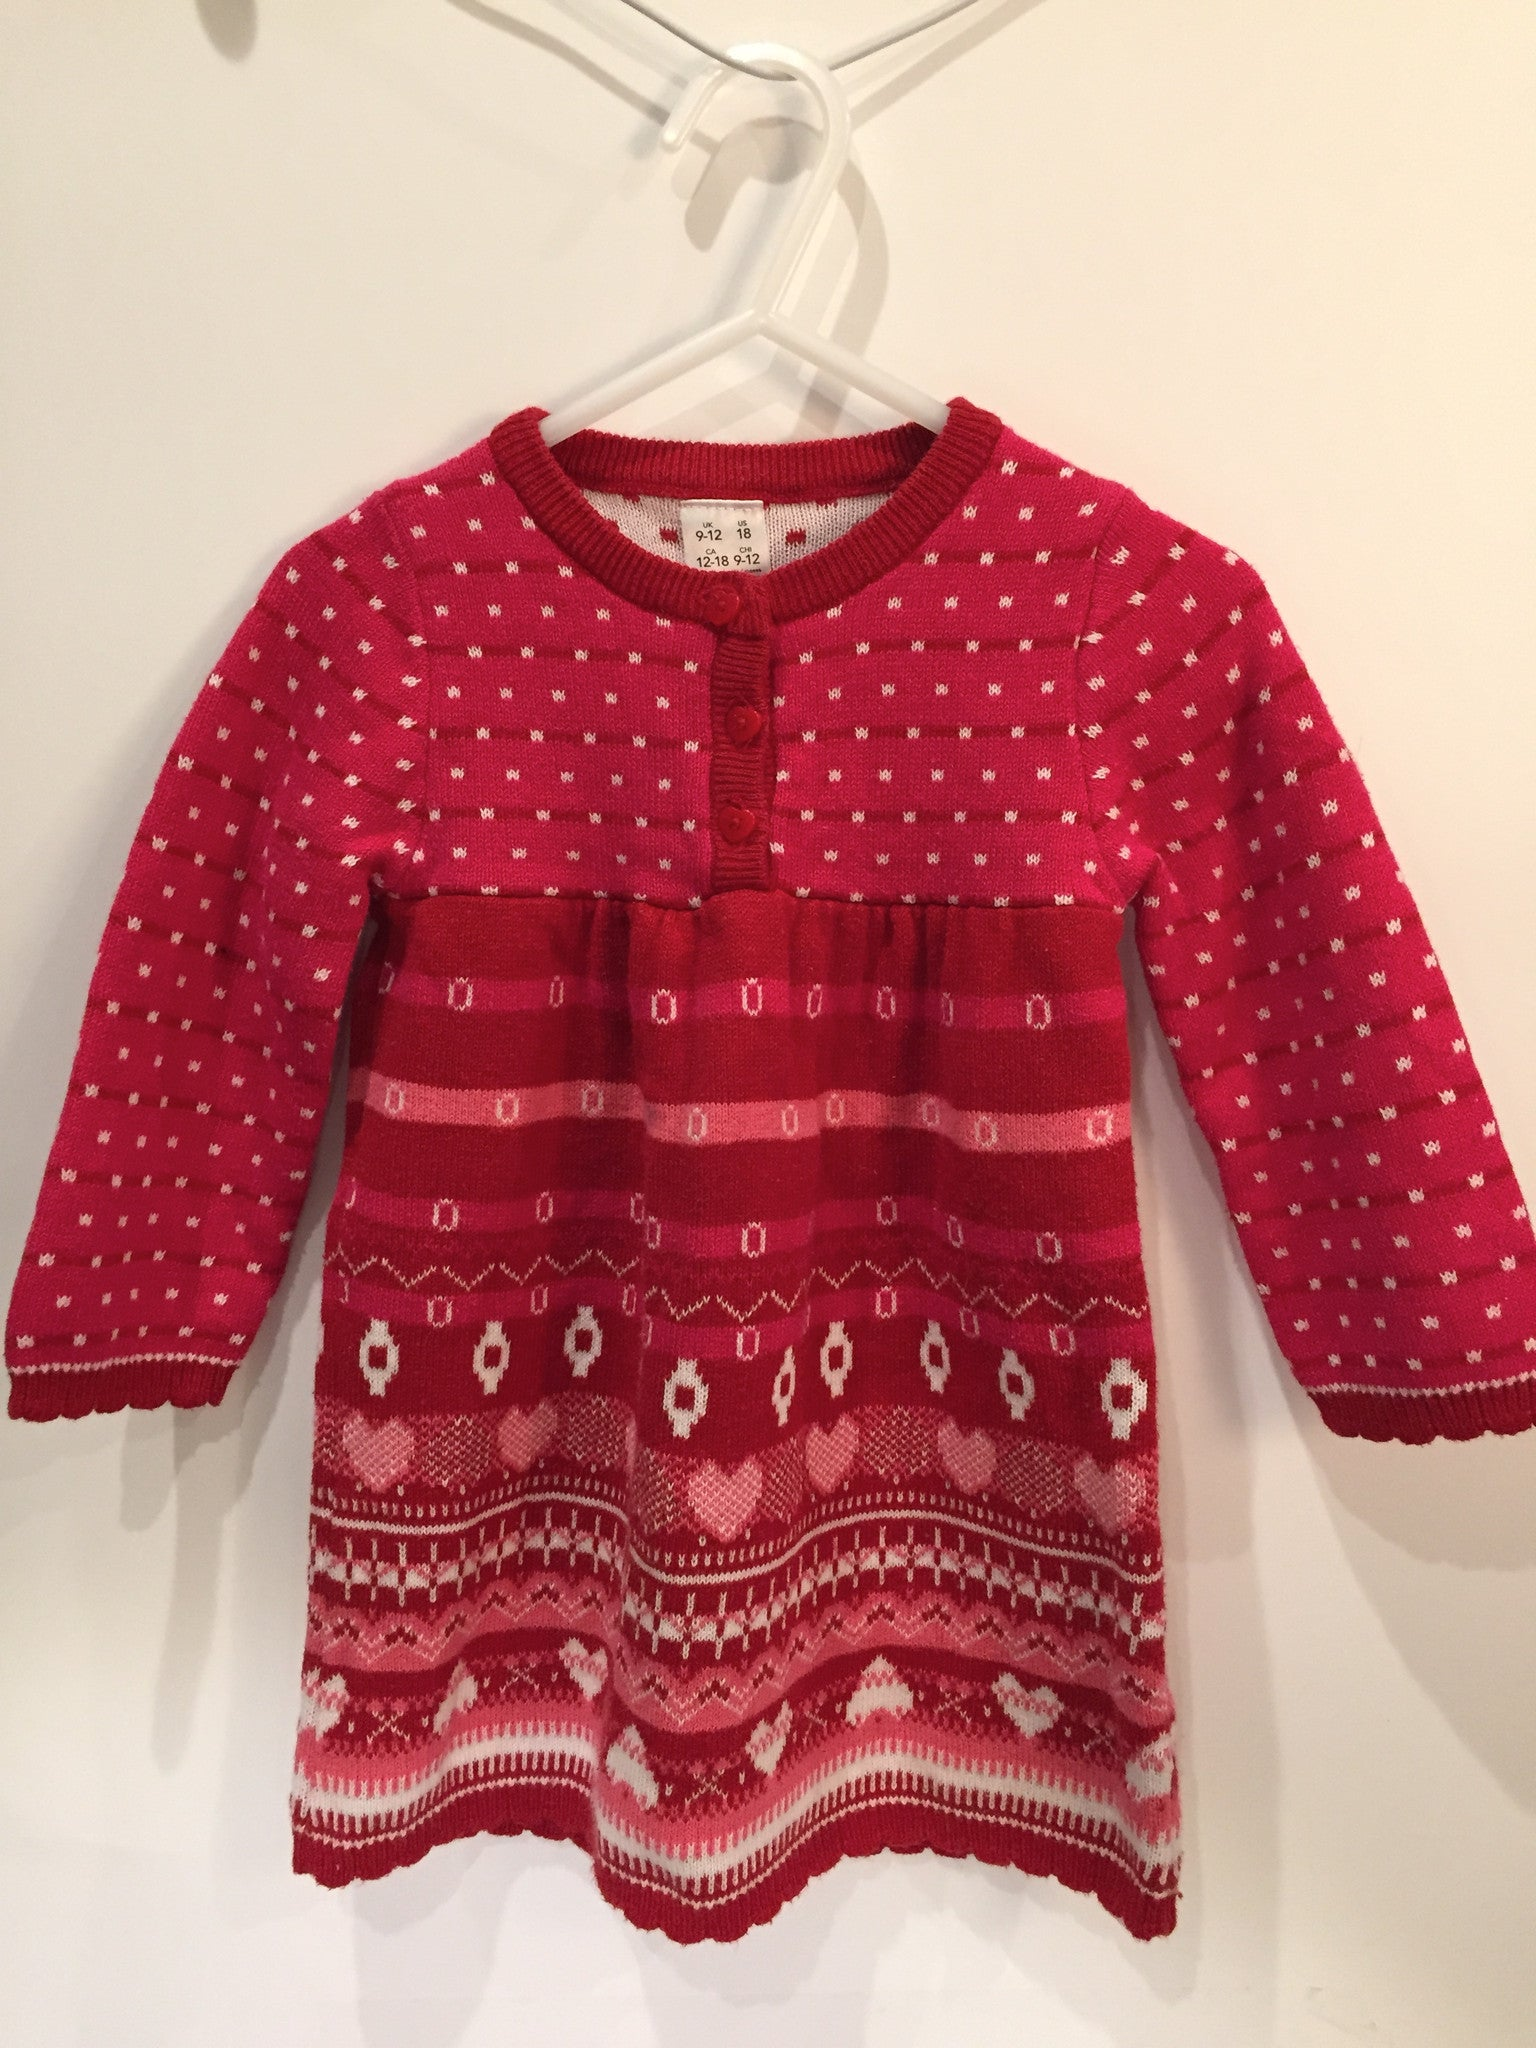 Girls Knit Sweater Dress | 12-18 Months